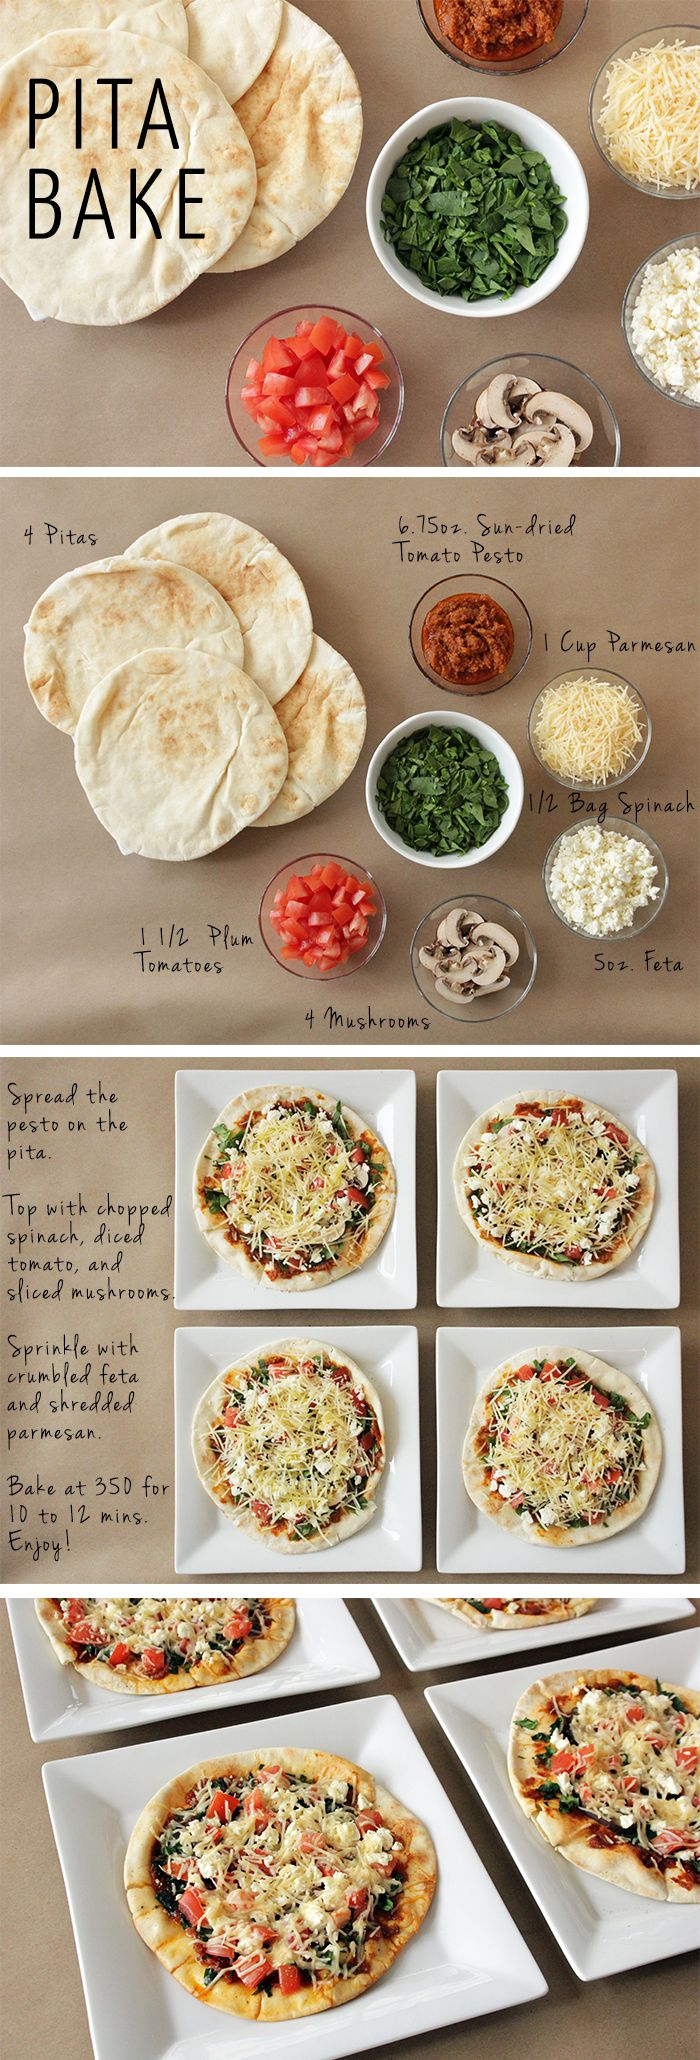 My New Alternative to Pizza: Pita Bake #HealthyEating #EasyRecipe #HealthyPizza